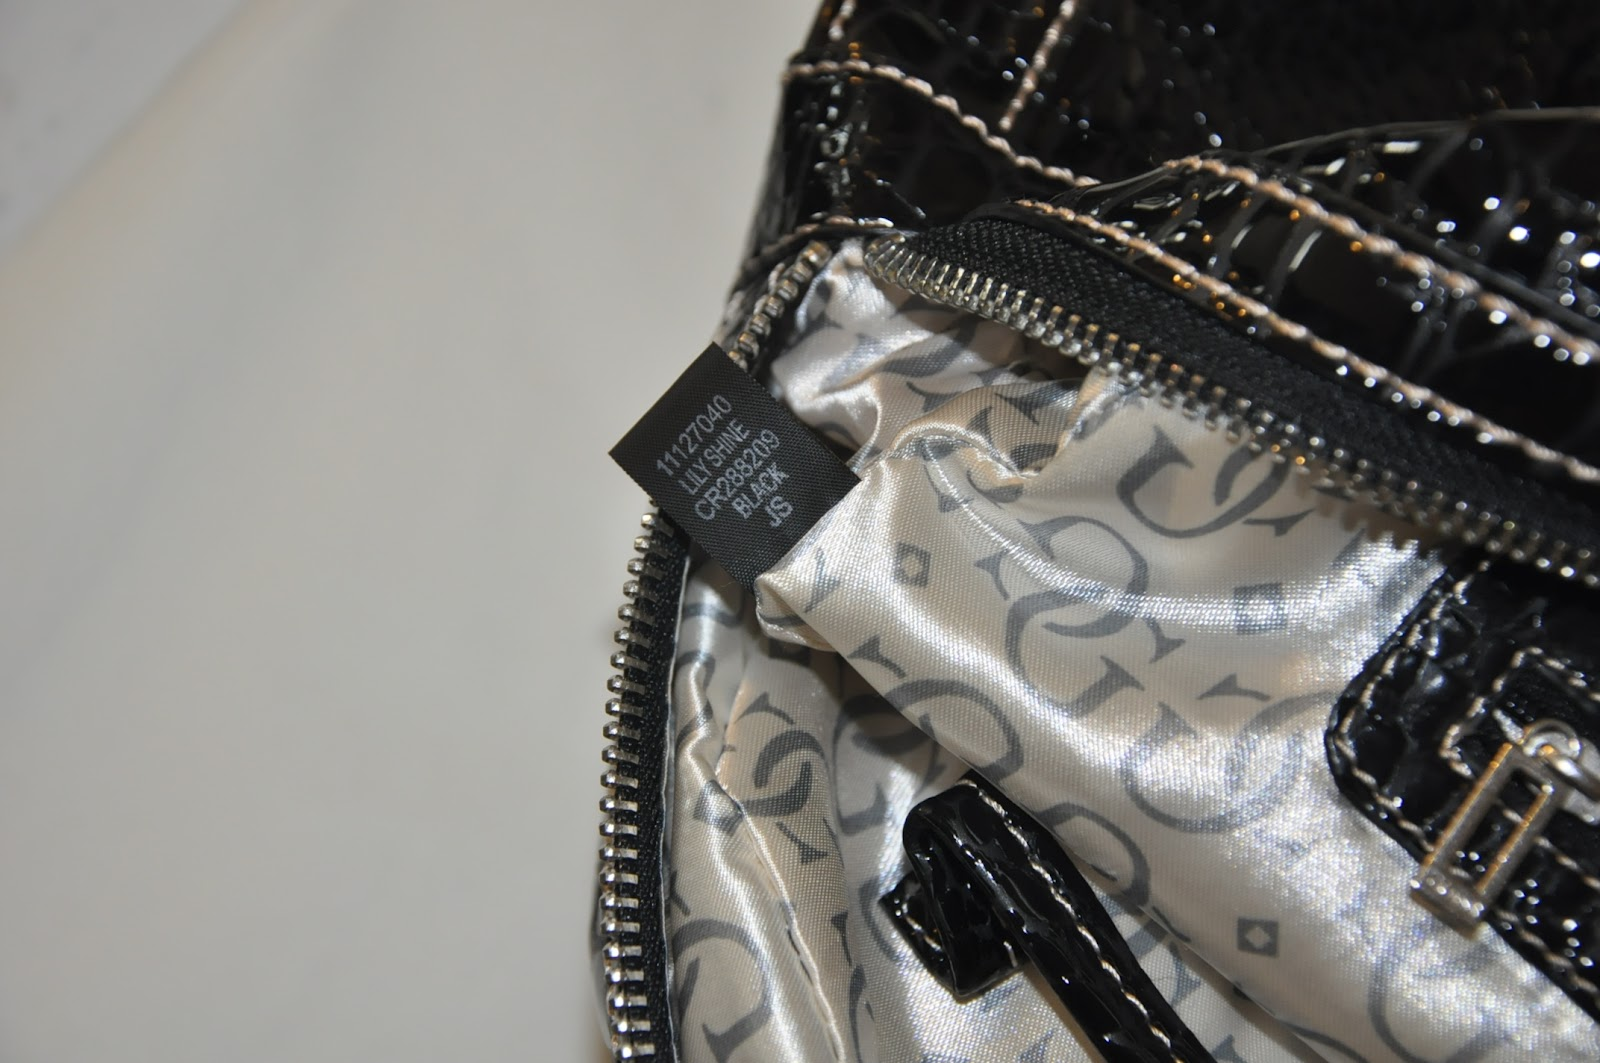 Hot to Spot Fake GUESS Products!: How to Spot Fake GUESS ...